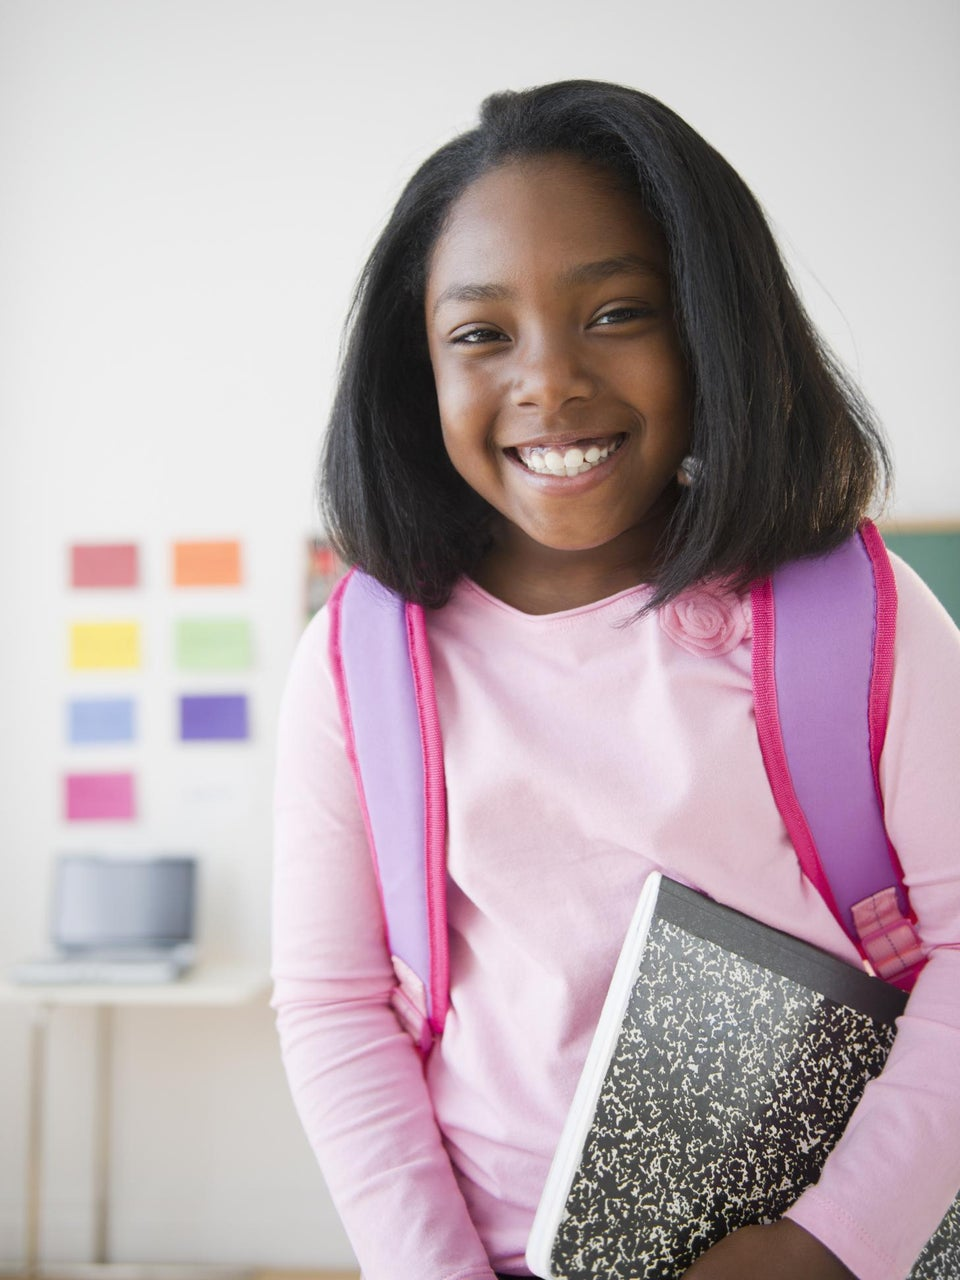 This Staggering News Study Reveals That Adults View Black Girls As Less Innocent Than Their White Peers